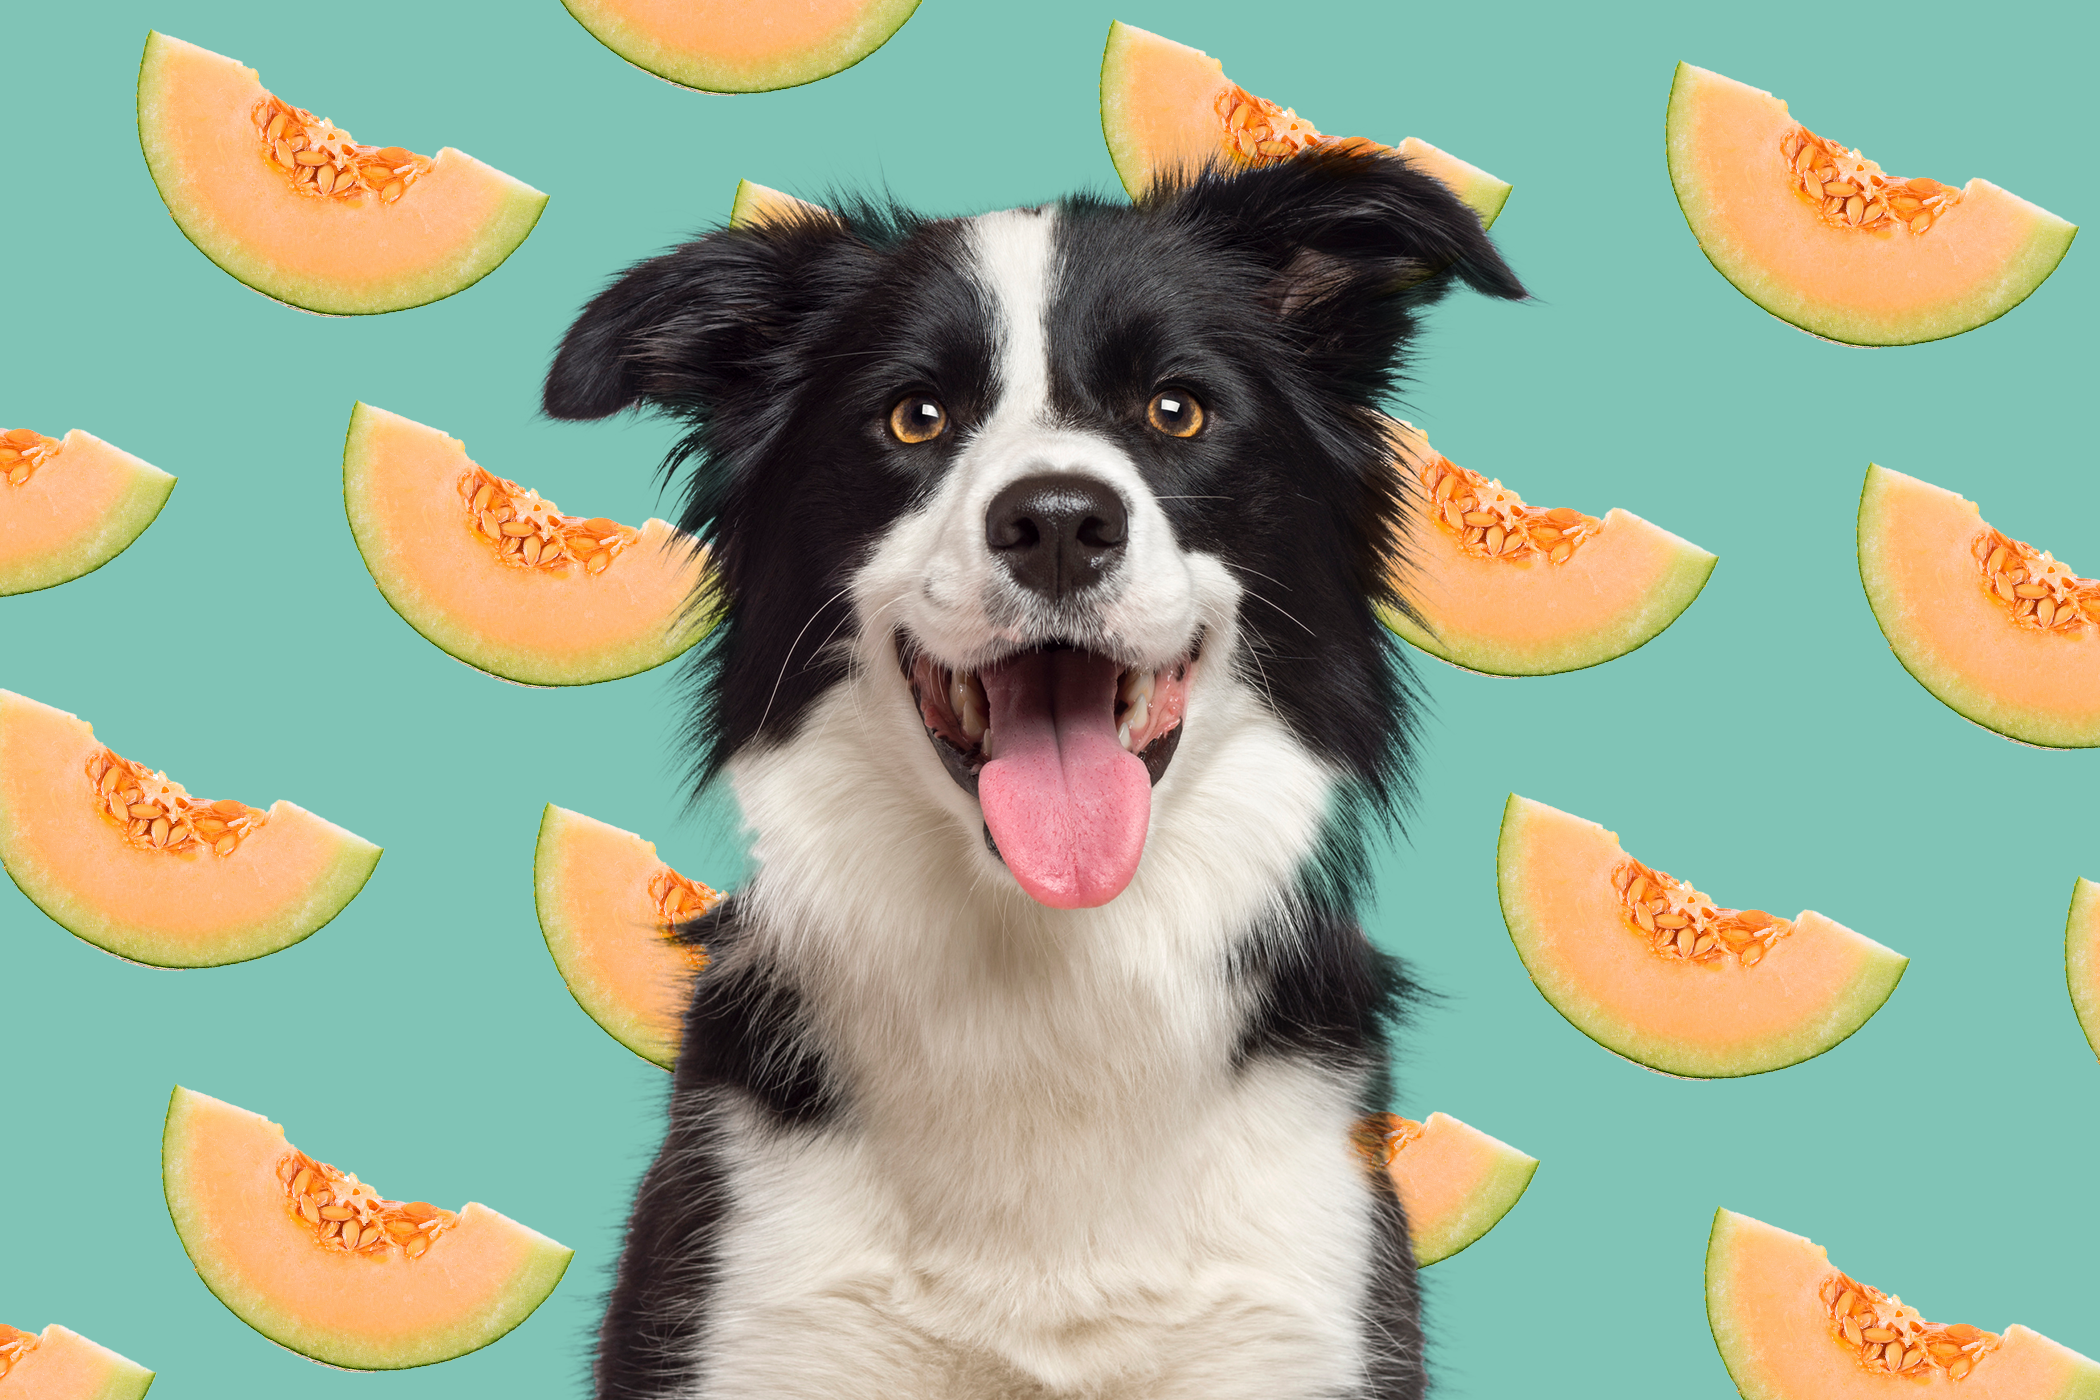 dog in front of a background of cut cantaloupe